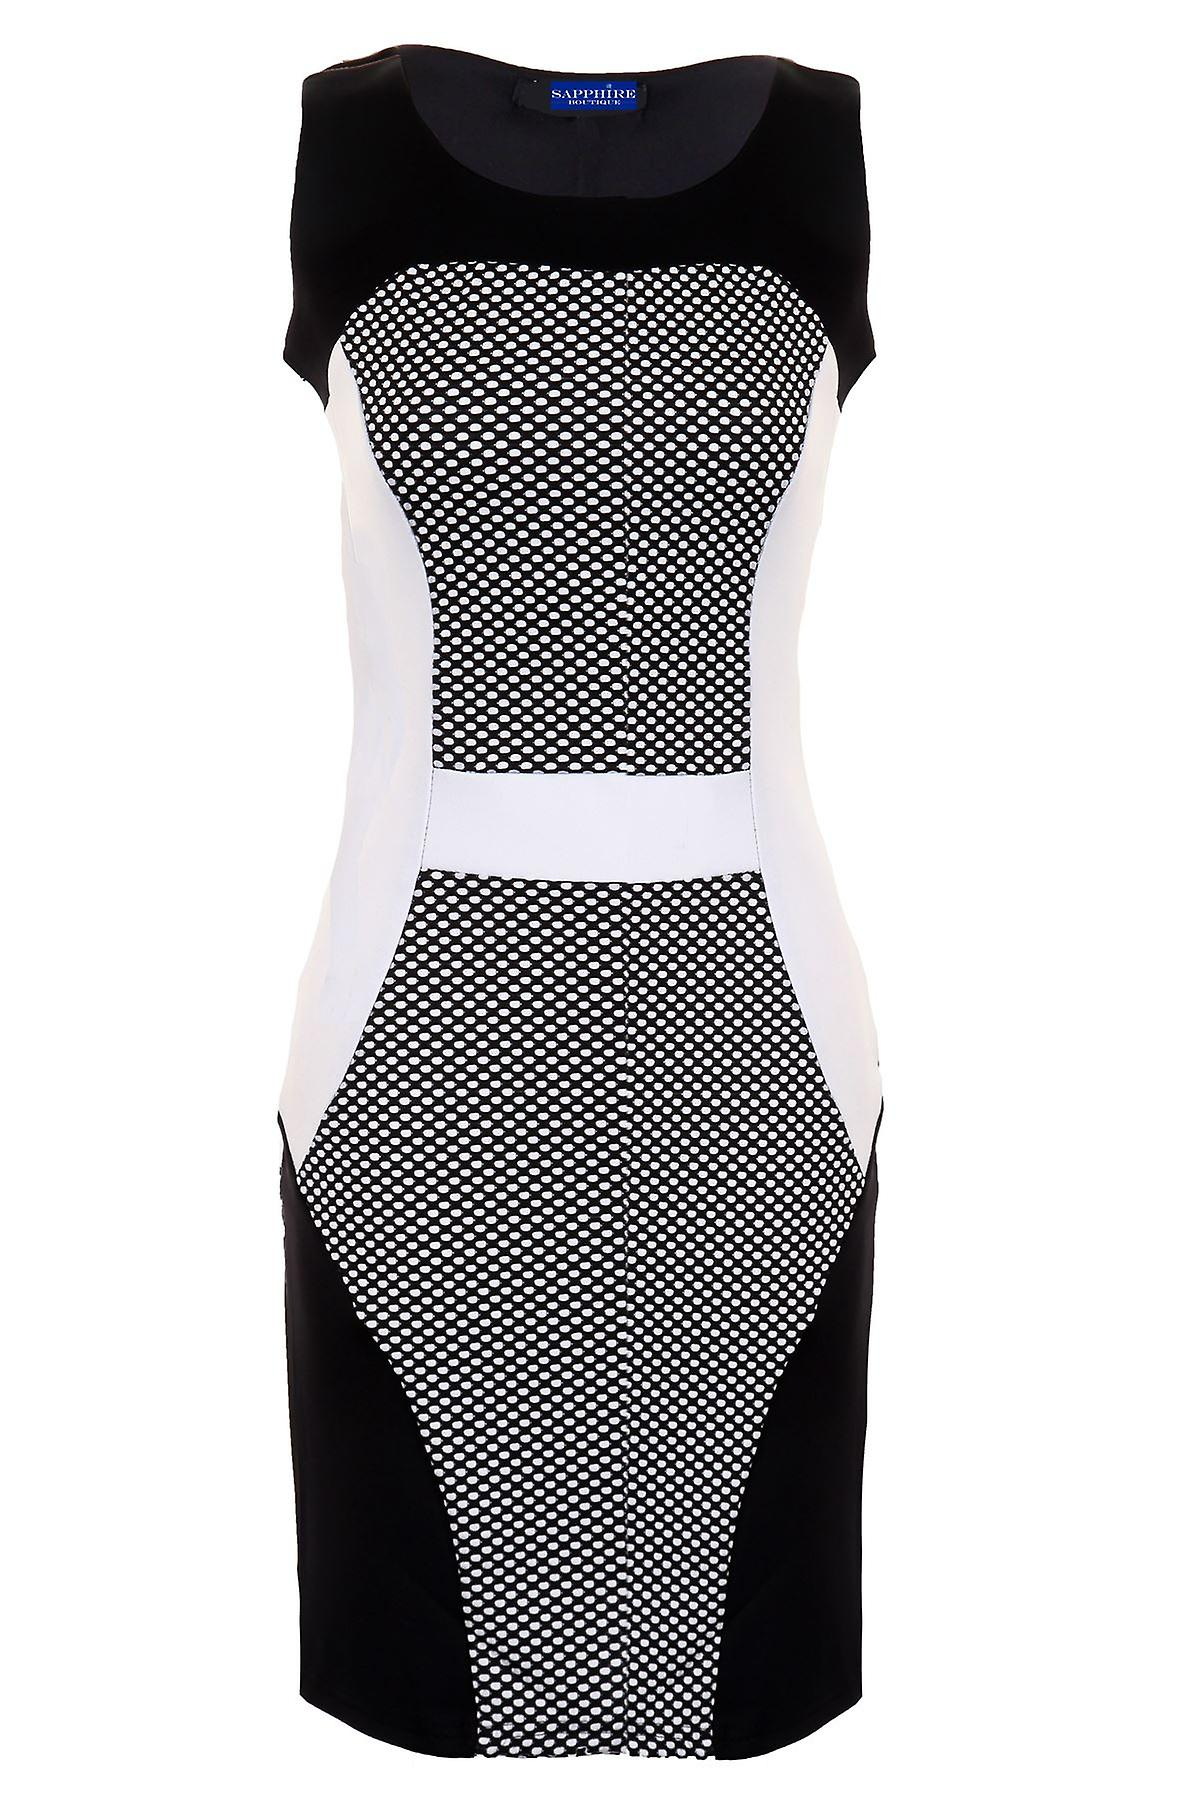 Ladies Polka Dot Textured Contrast Panels Slim Effect Womens Bodycon Party Dress